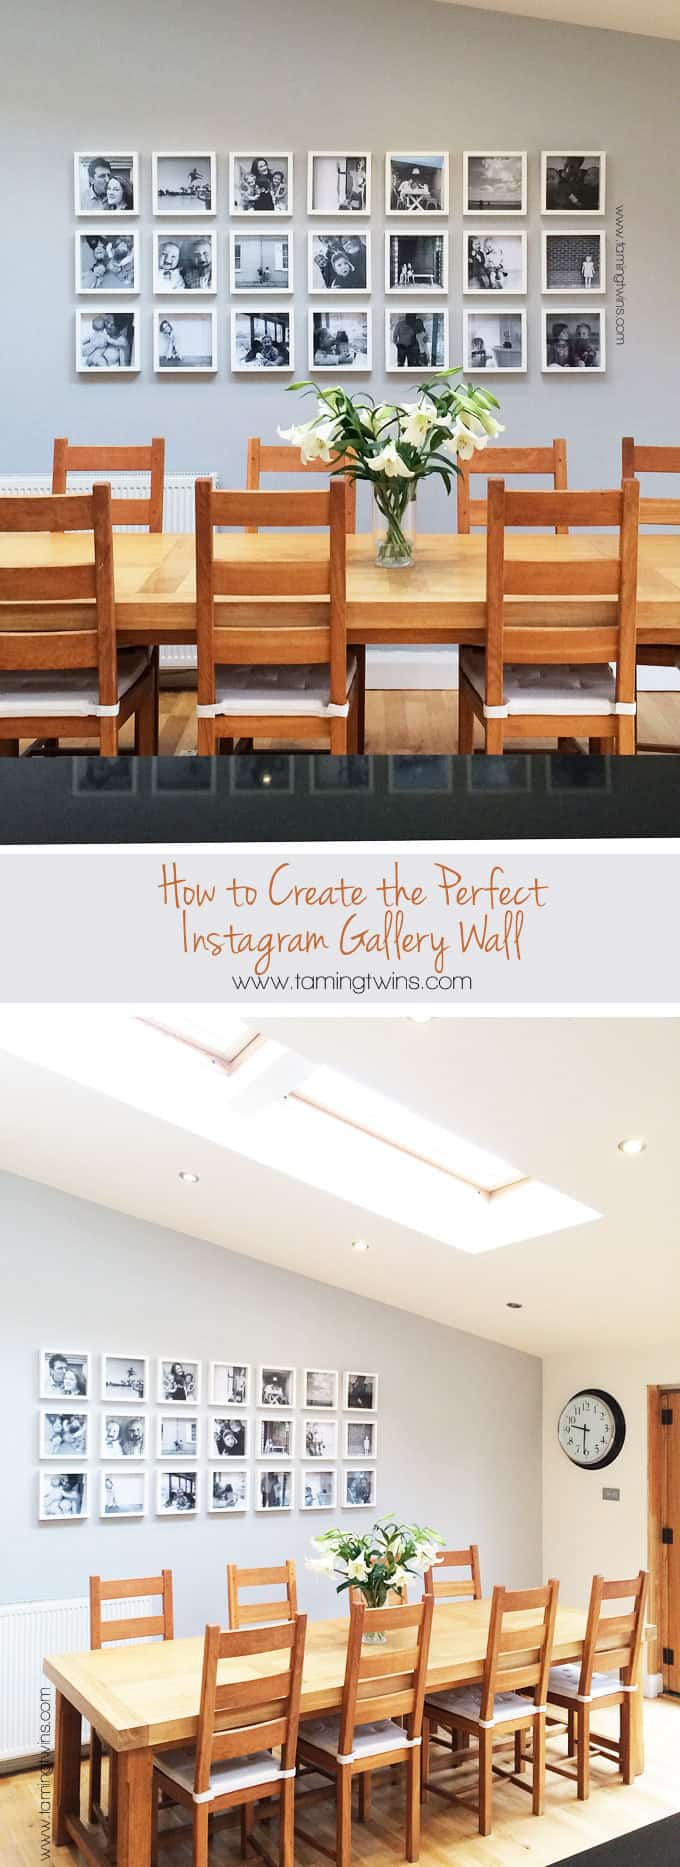 How to create the perfect Instagram gallery wall (using Ikea frames!) Tips and tricks for getting the perfect finish. | TamingTwins.com https://www.tamingtwins.com